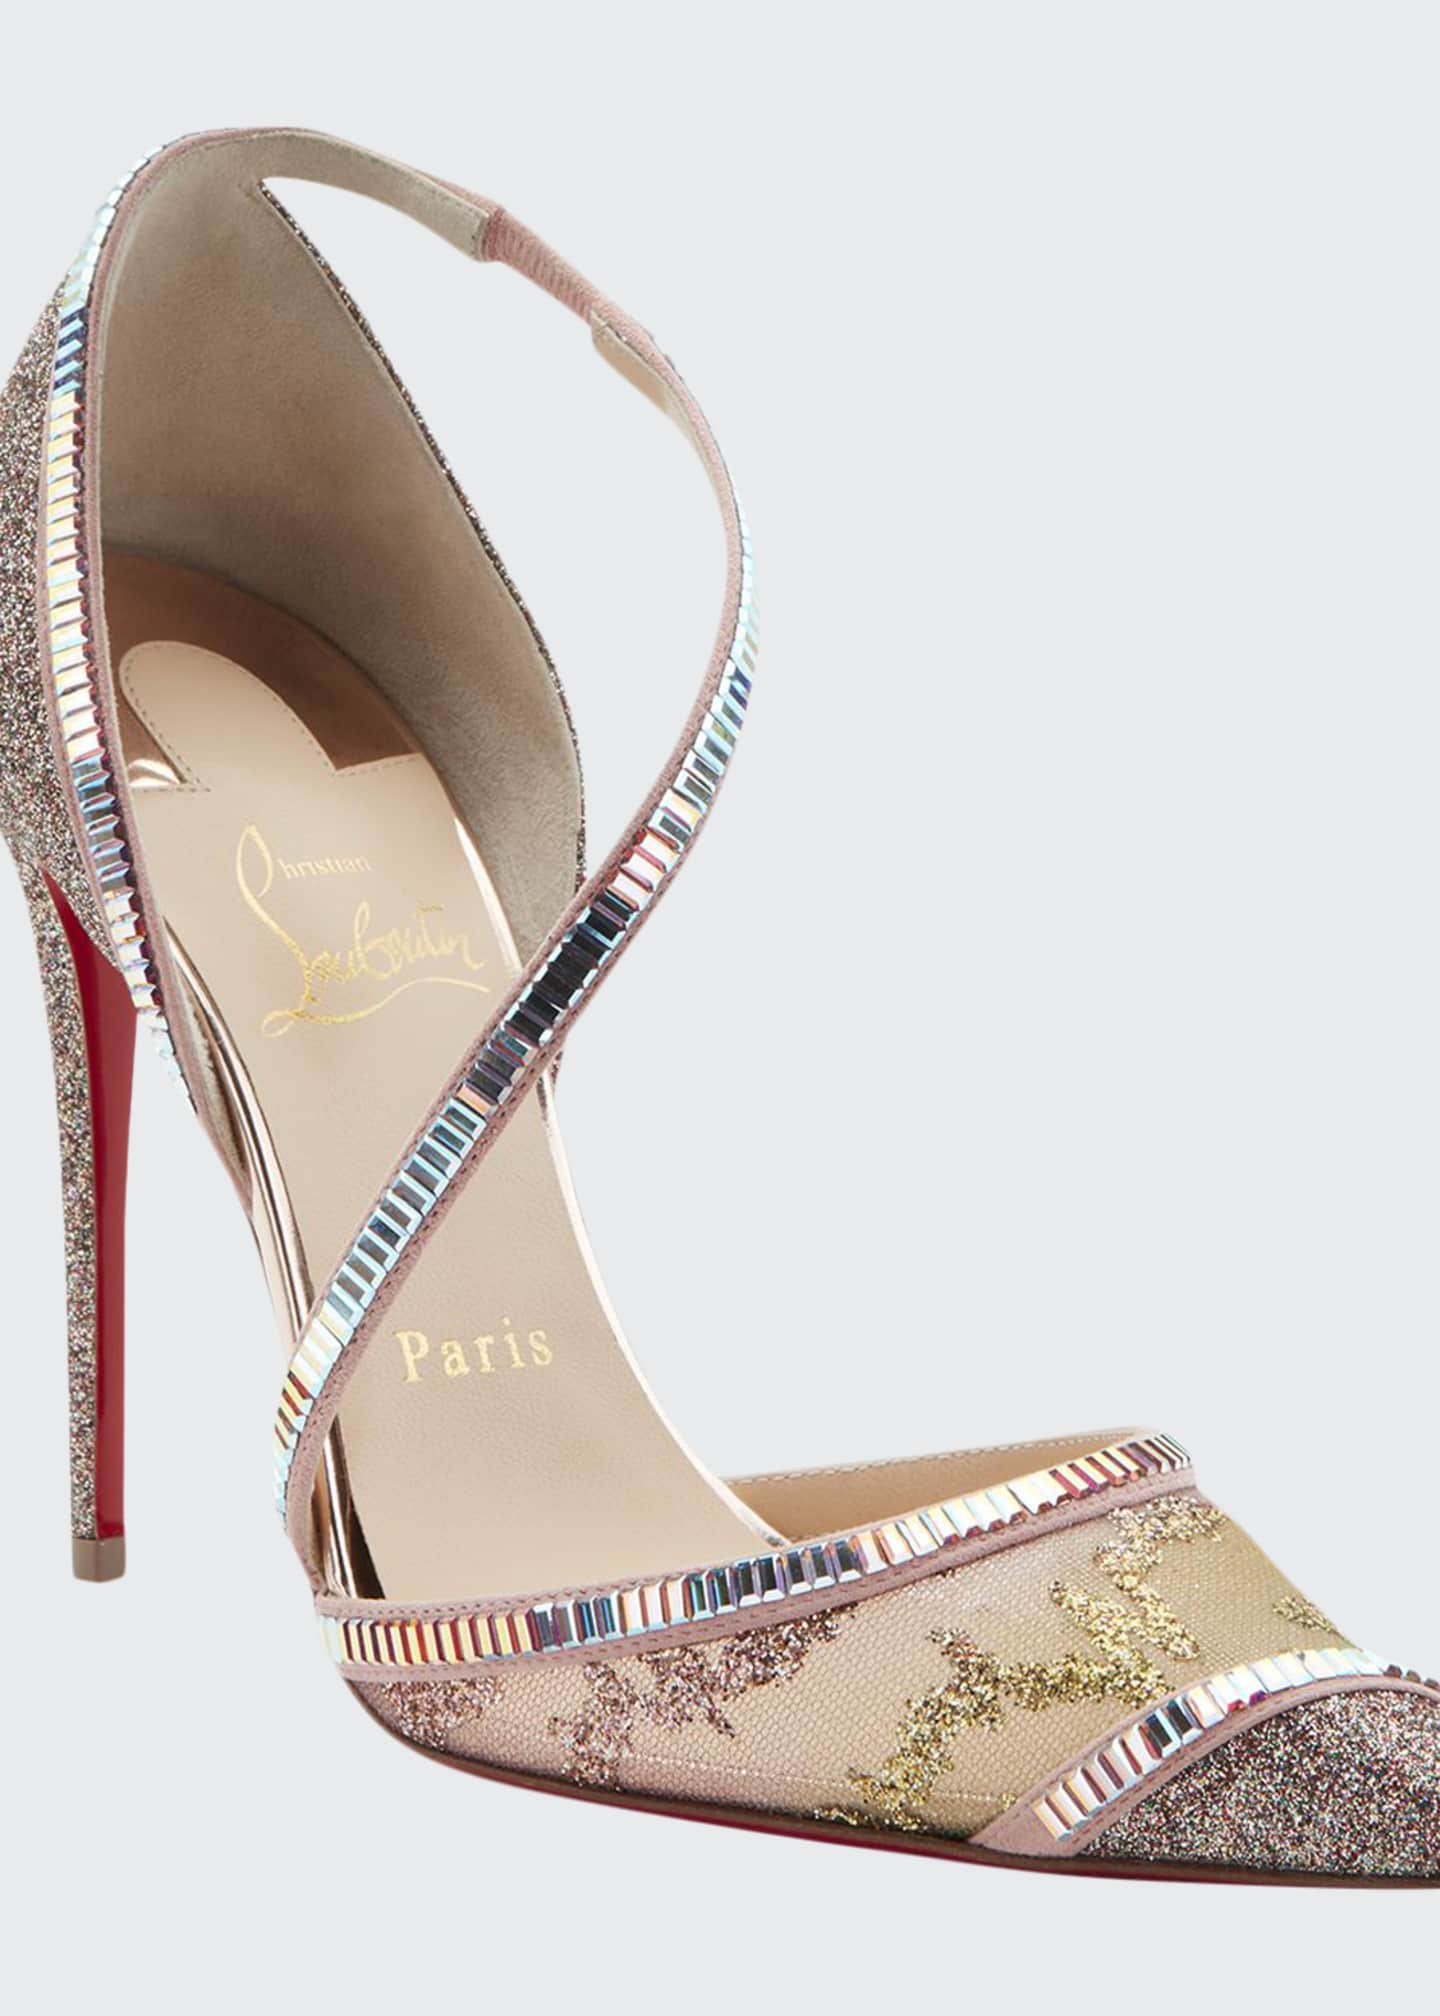 Christian Louboutin Chiara Diams Red Sole Pumps